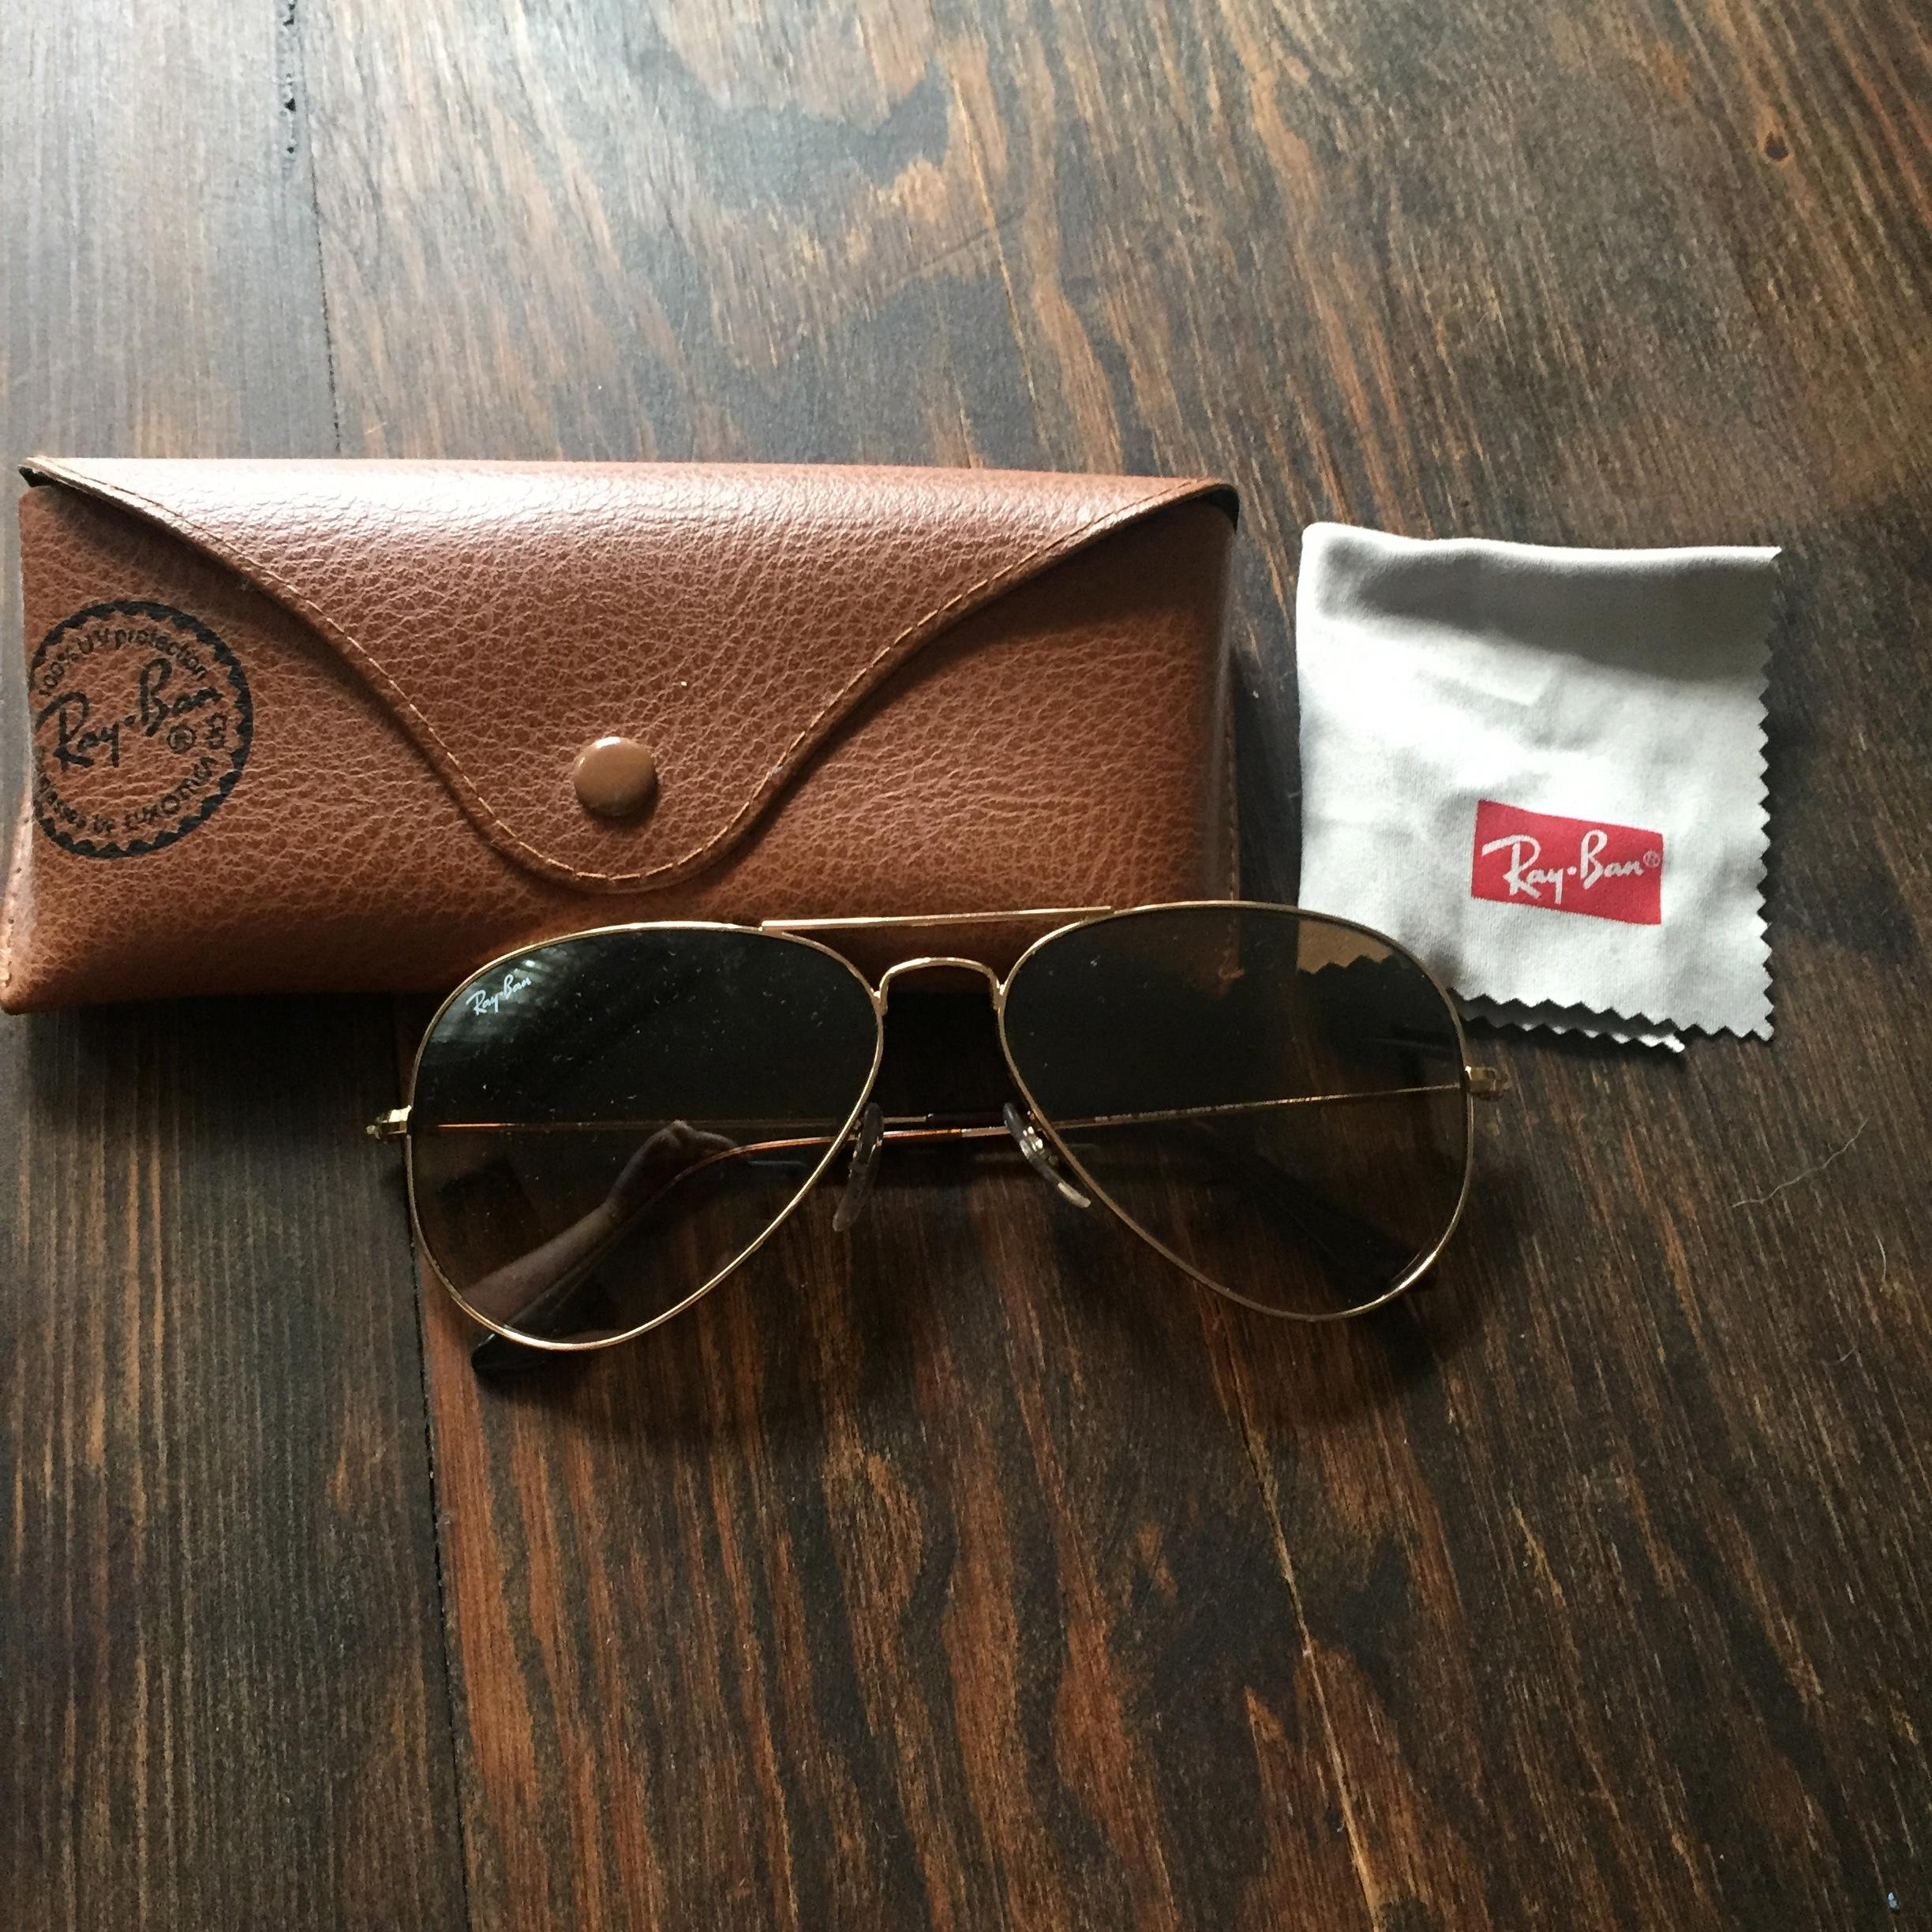 3fbf985399 ... sunglasses red brown gradient new 04b6c 2a3e3  purchase ray ban ray ban  aviator flat metal rb3513 149 13 94363 678ee